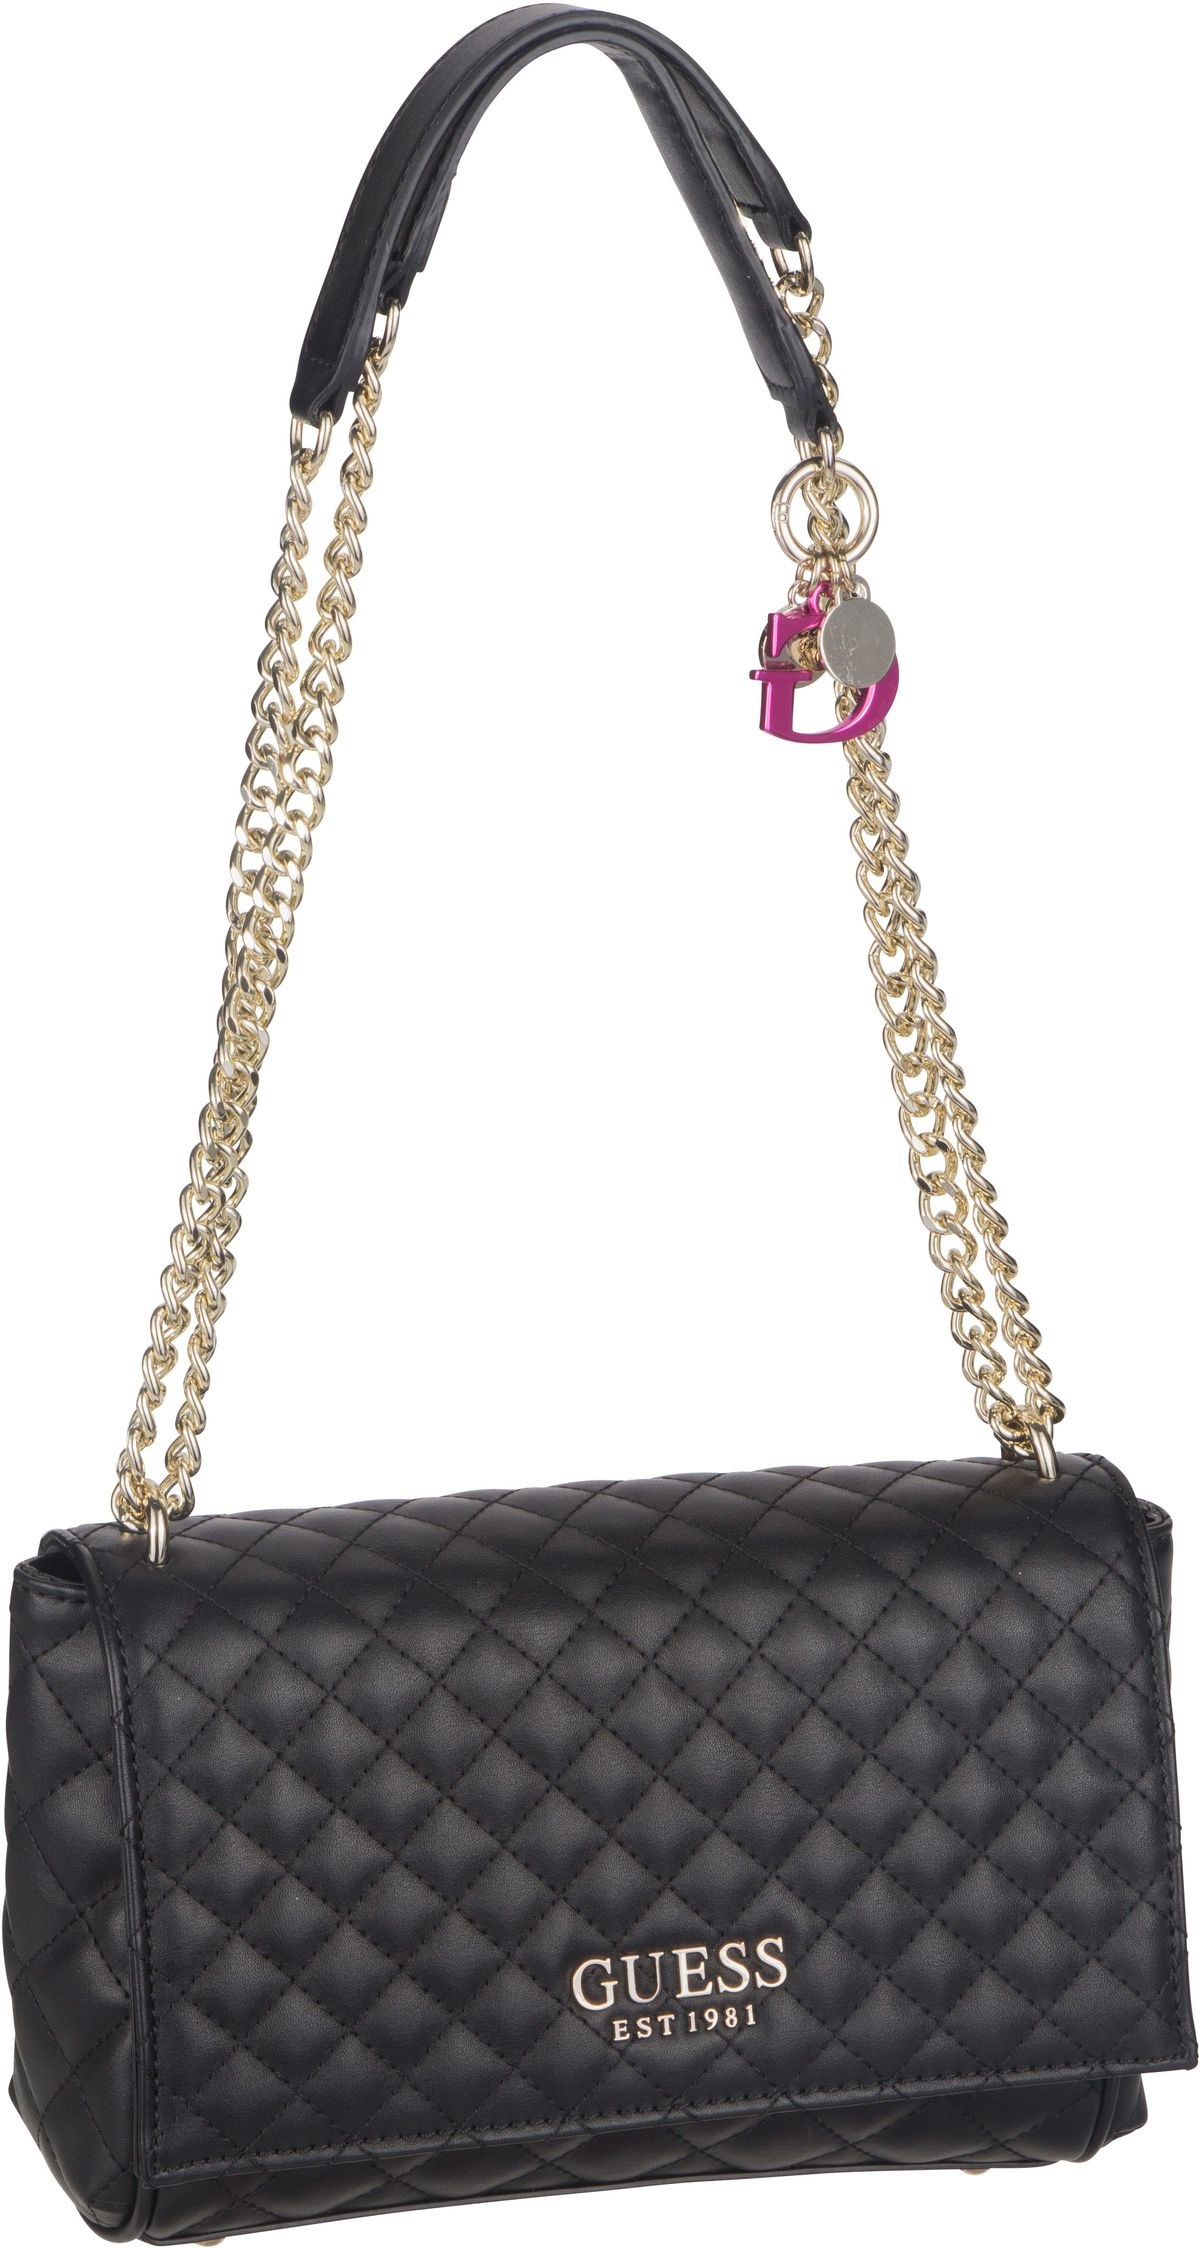 Handtasche Brielle Convertible Crossbody Flap Black